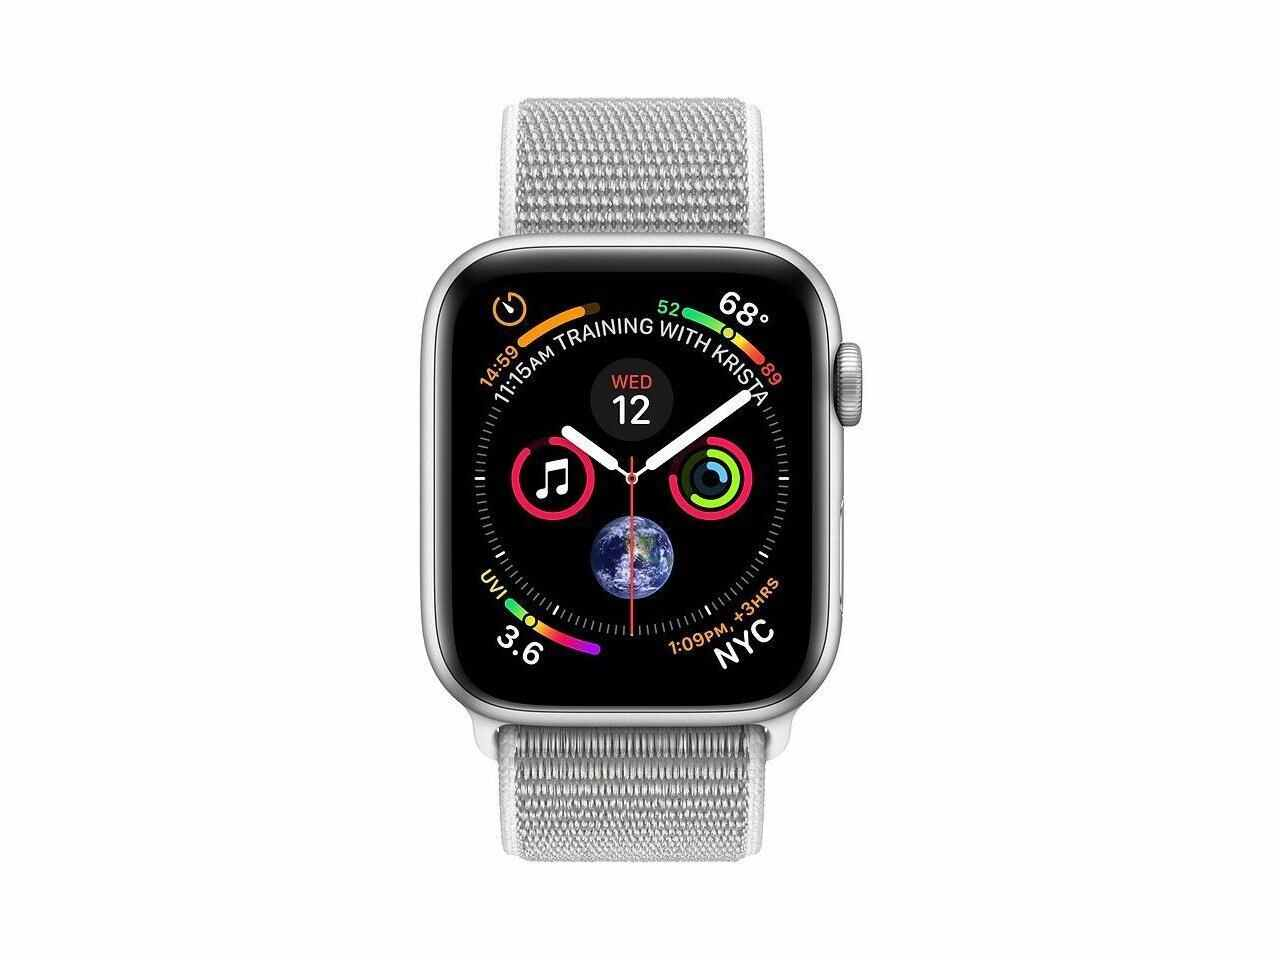 Apple Watch Series 4 The Best Smartwatch